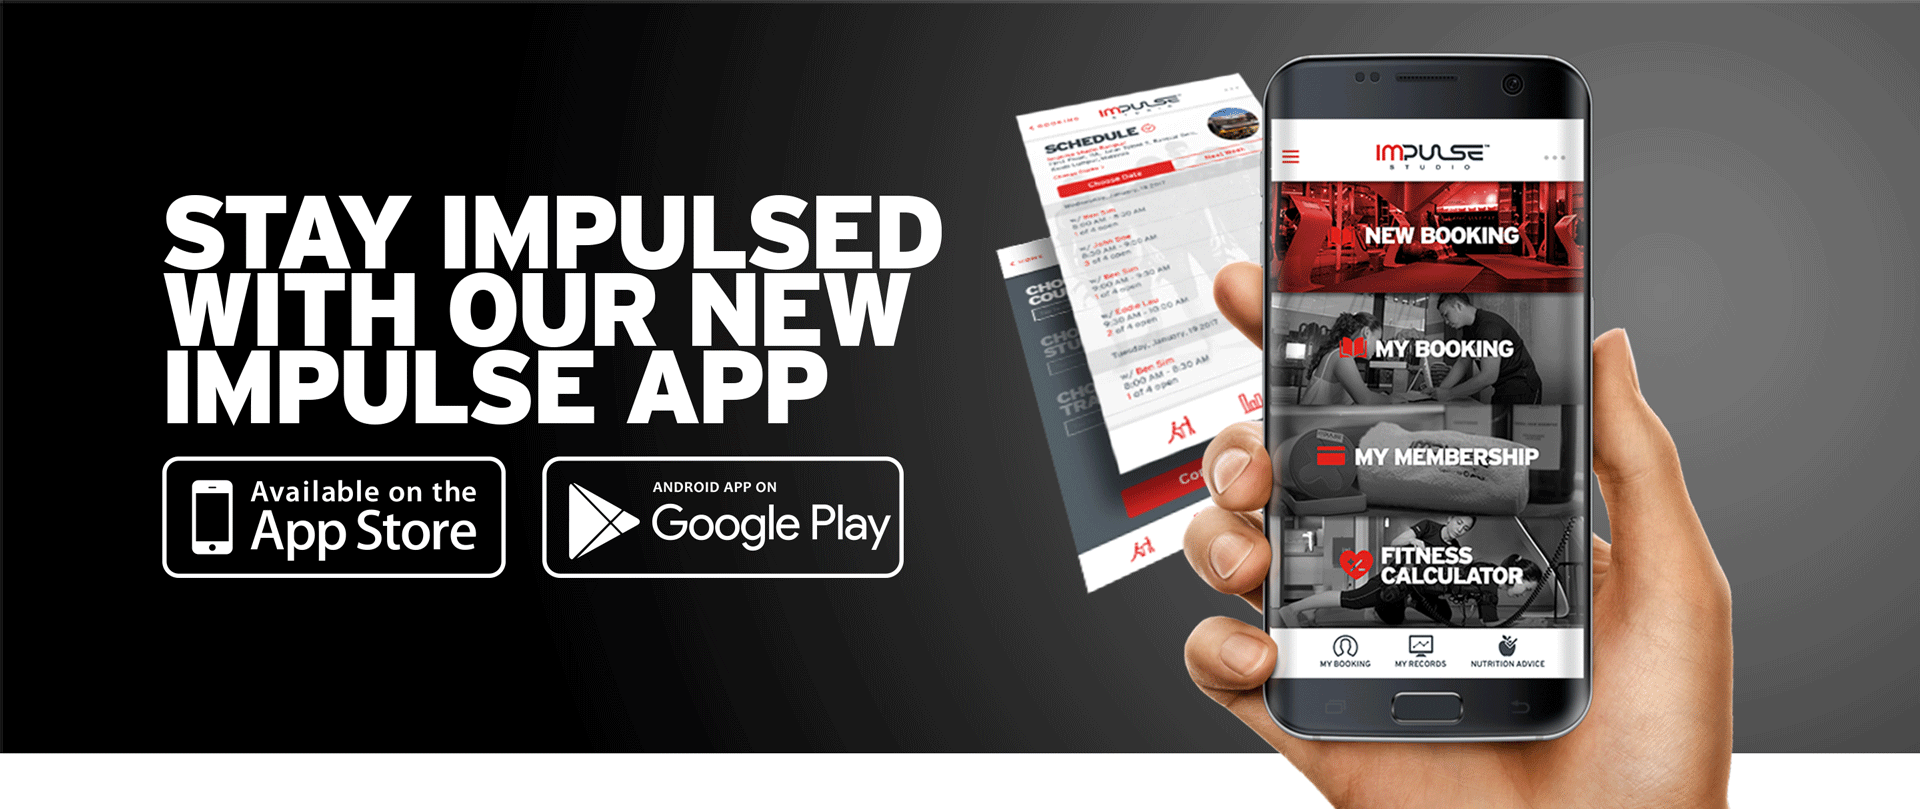 Download the Impulse App